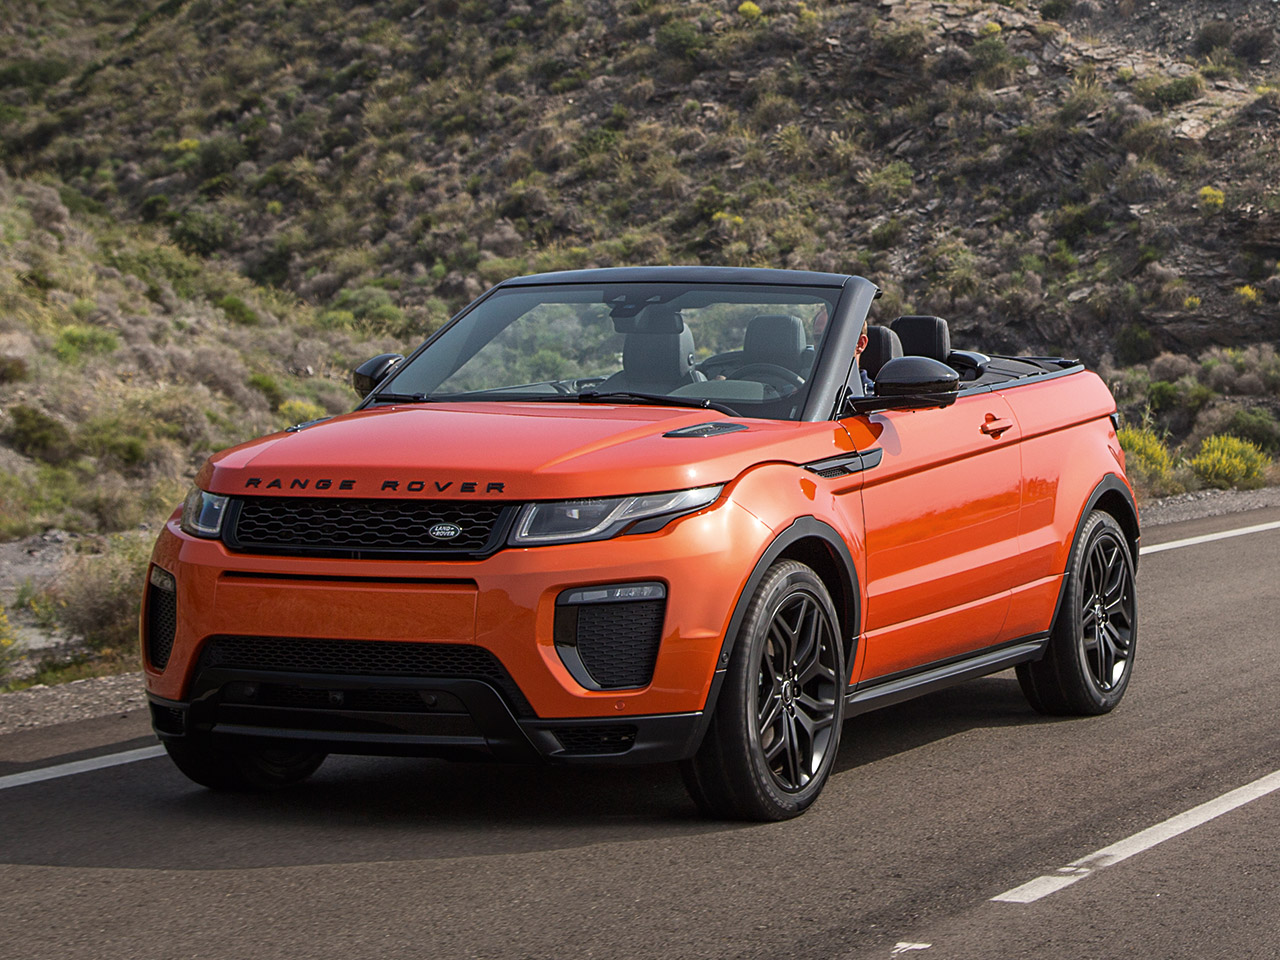 range rover evoque cabrio 2016 preis. Black Bedroom Furniture Sets. Home Design Ideas